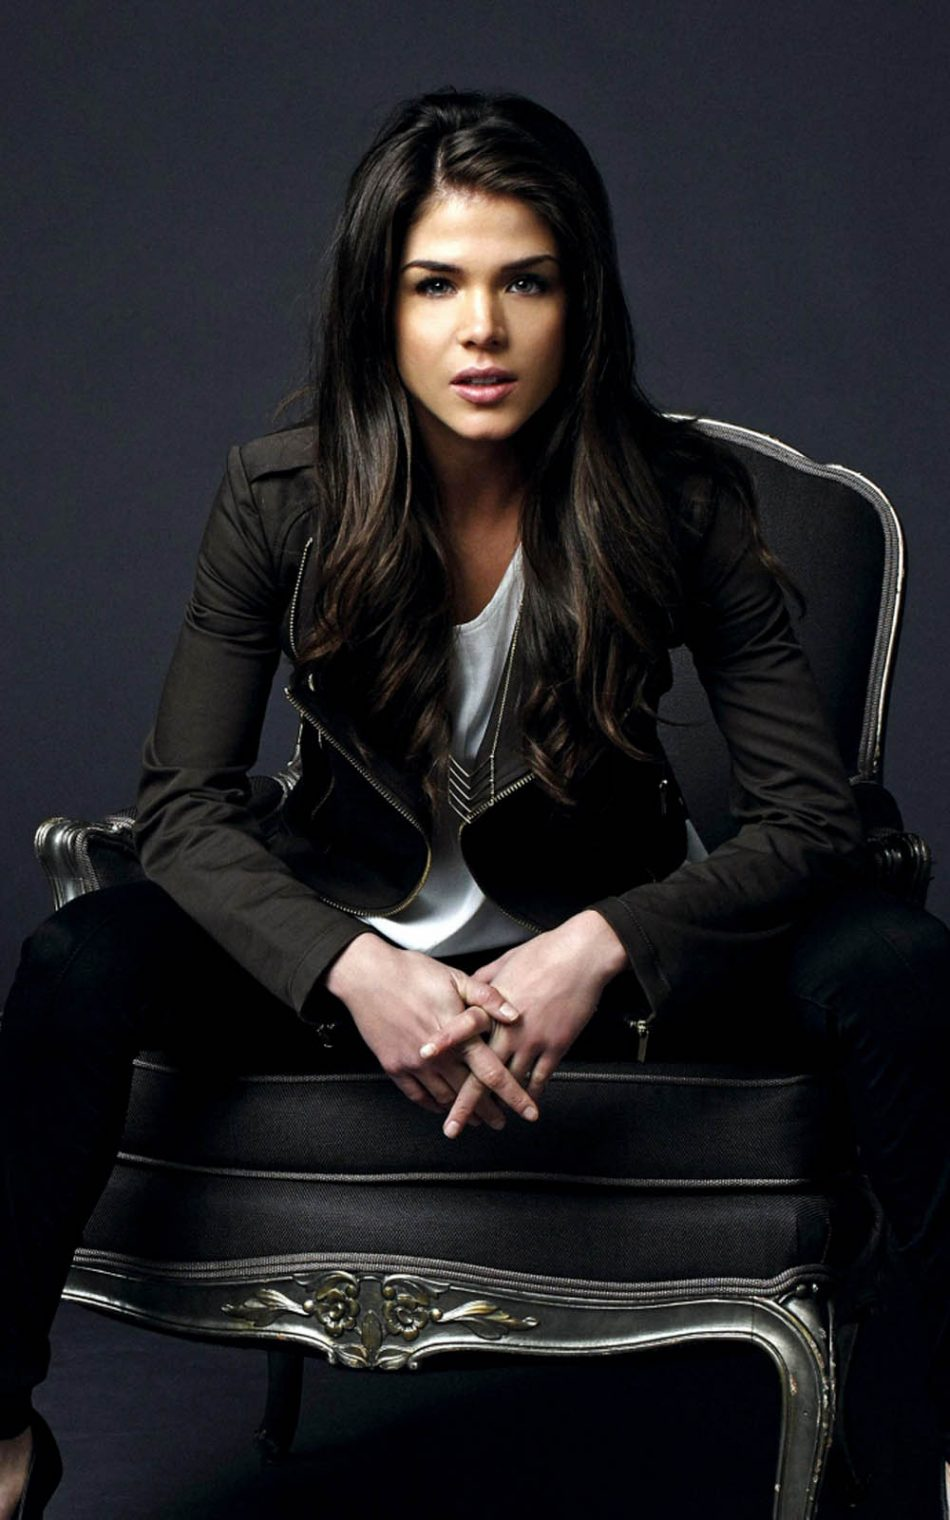 Download Marie Avgeropoulos Pure 4K Ultra HD Mobile Wallpaper 950x1520